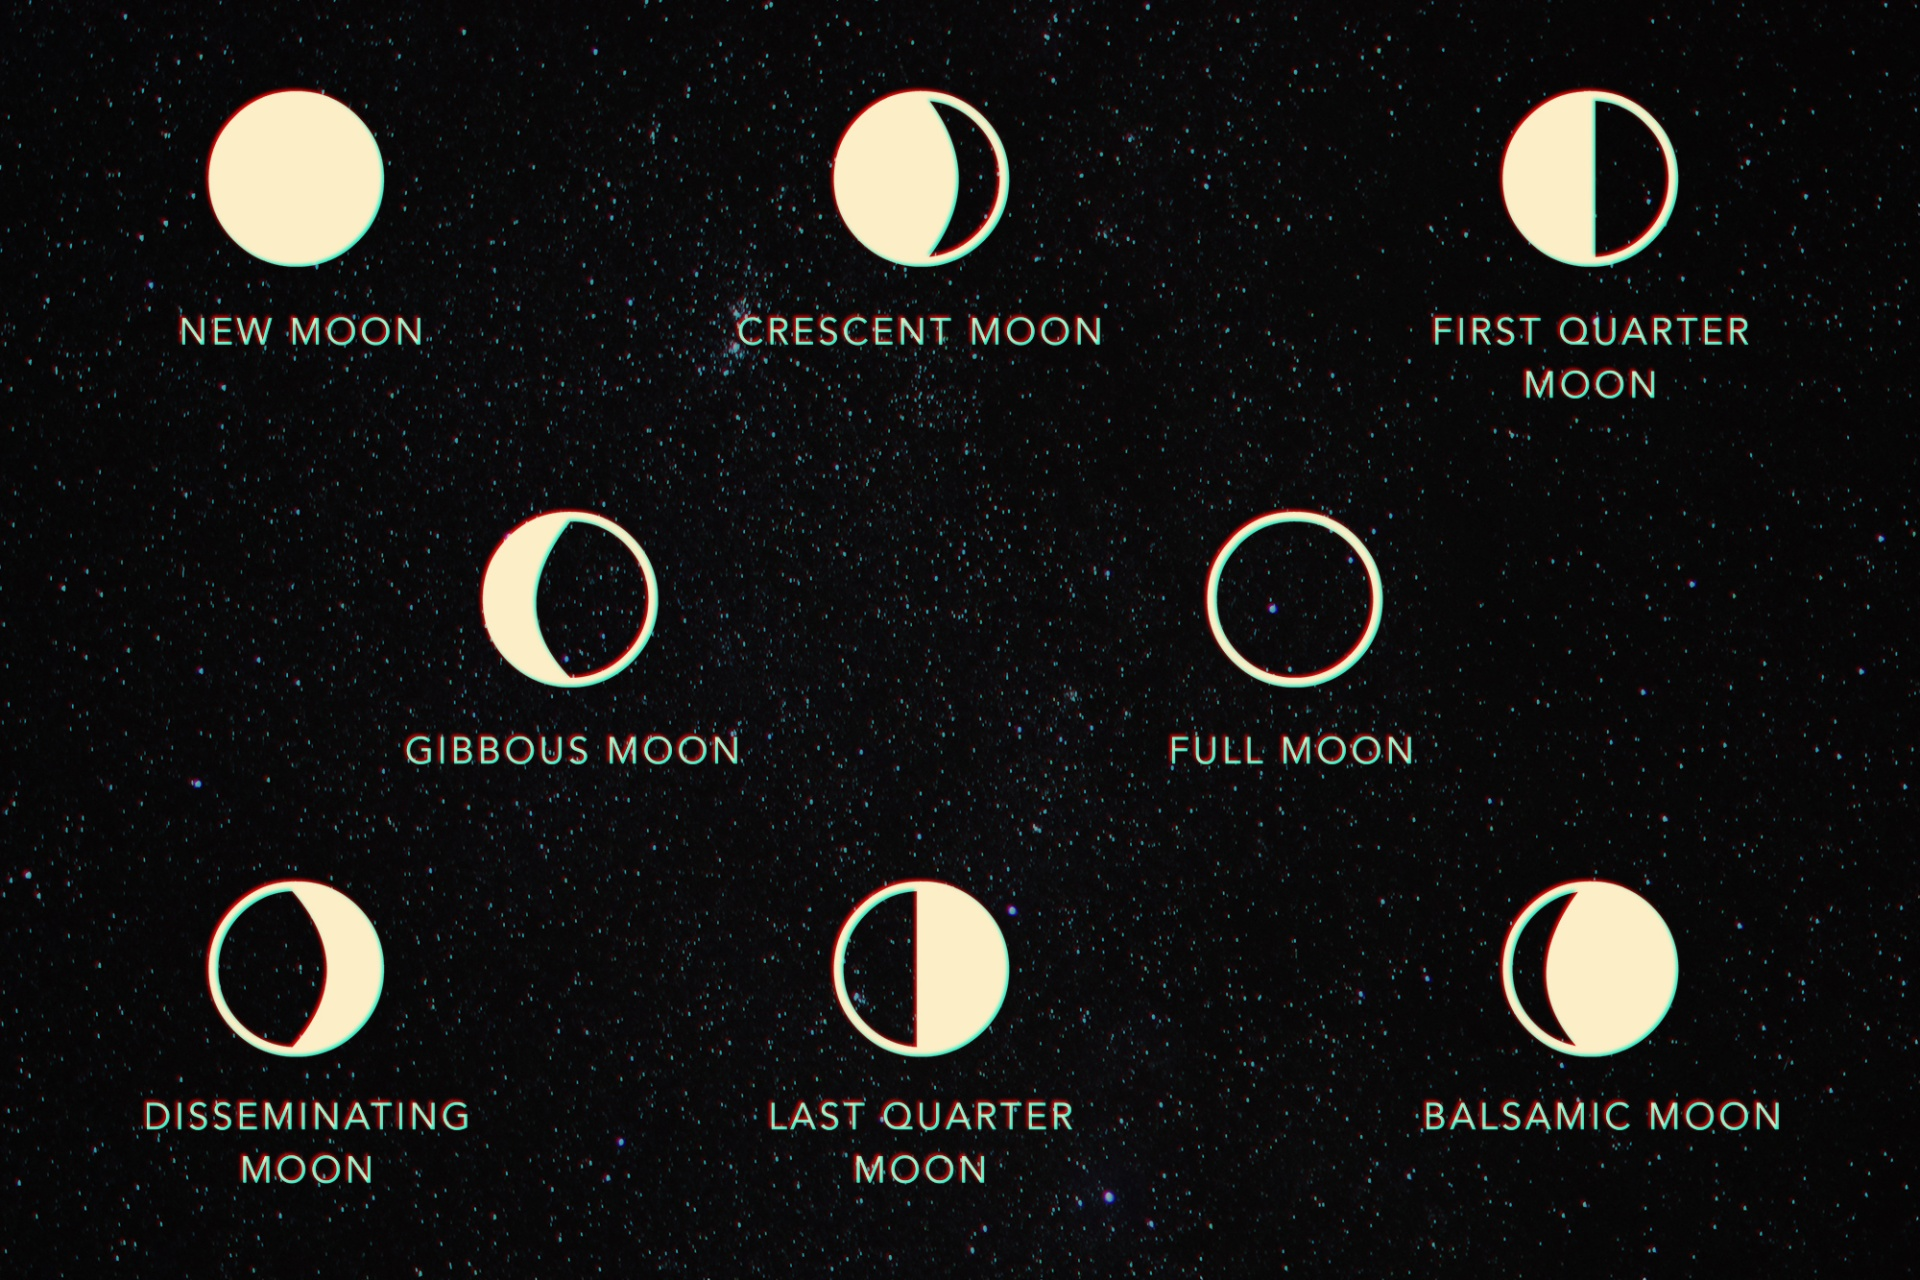 Astrological Symbols That Will Help You Learn More About The Universe And About Yourself